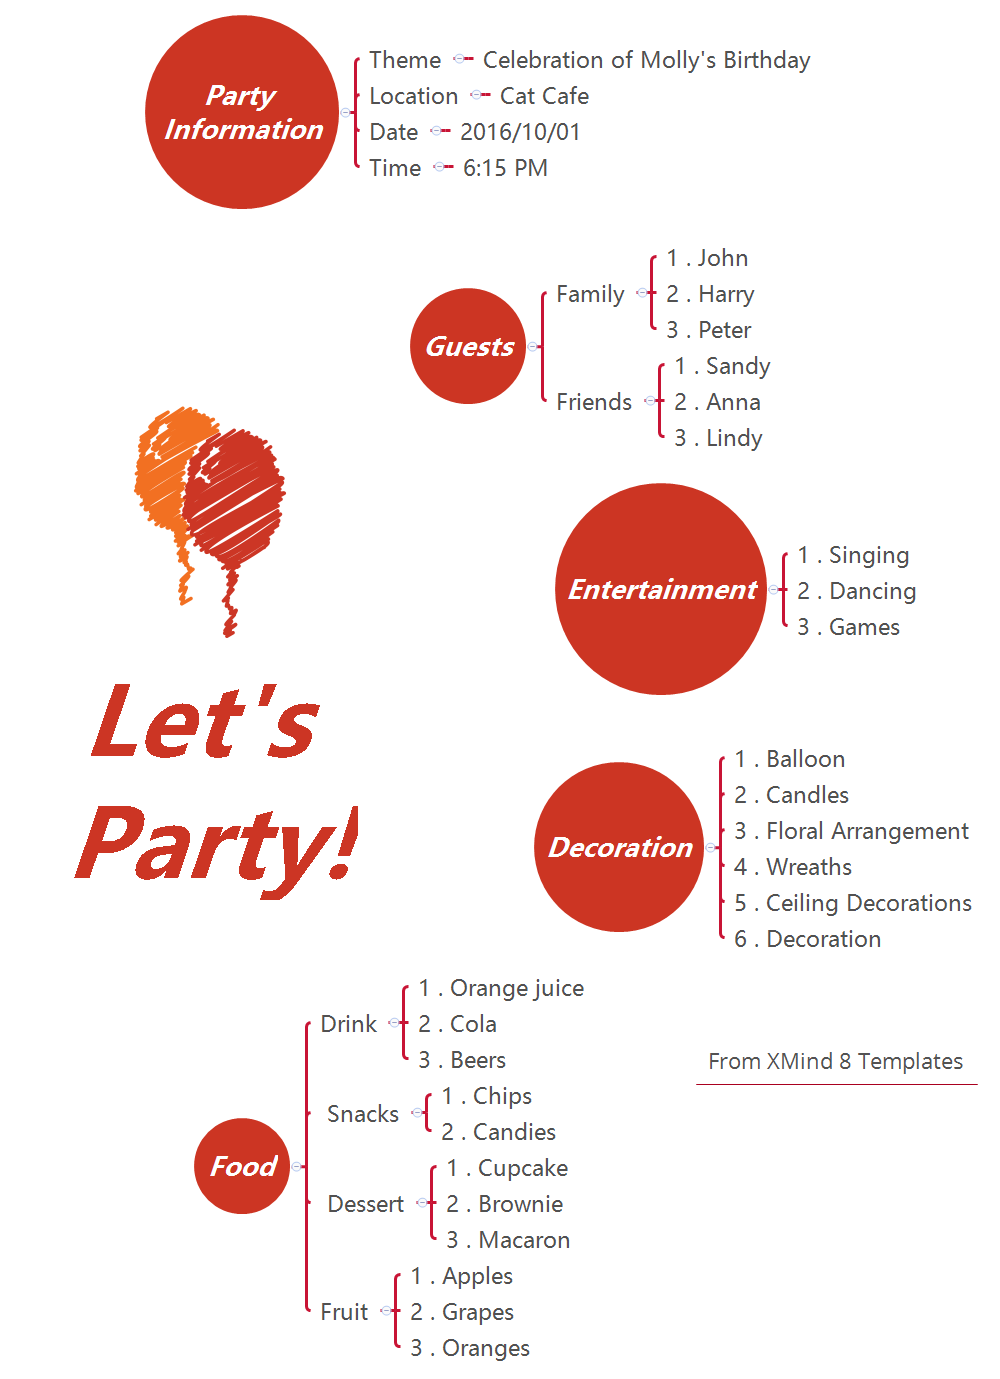 Party Preparation from XMind 8 Templates